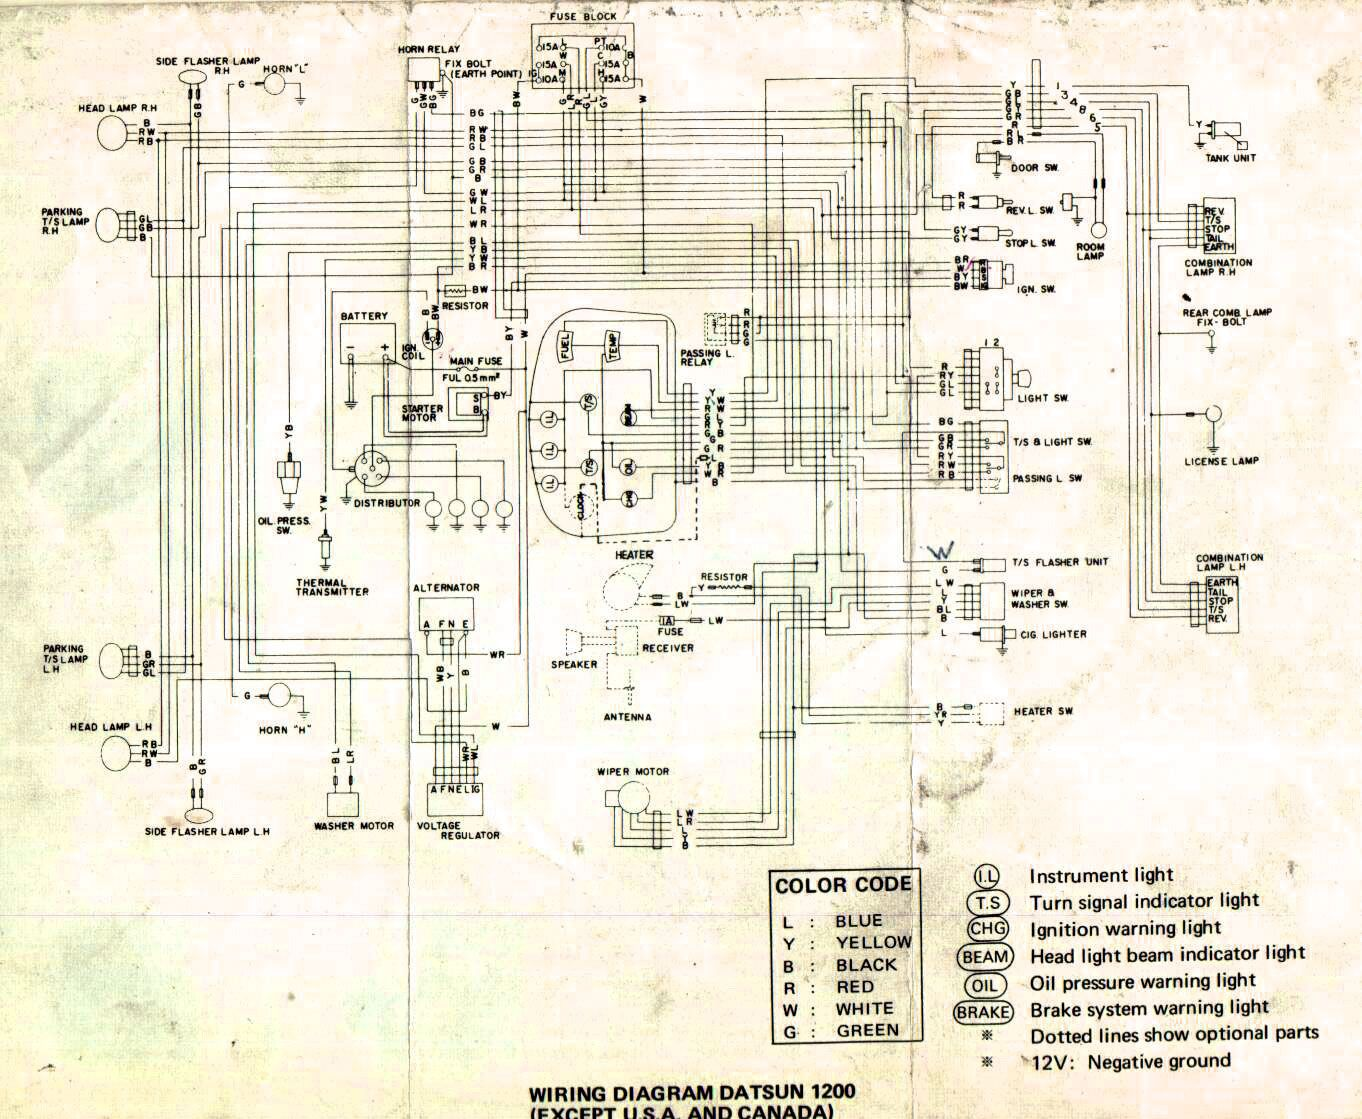 small resolution of wiring diagram for nissan 1400 bakkie 8 nissan nissan diagram nissan 1400 wiring diagram free download